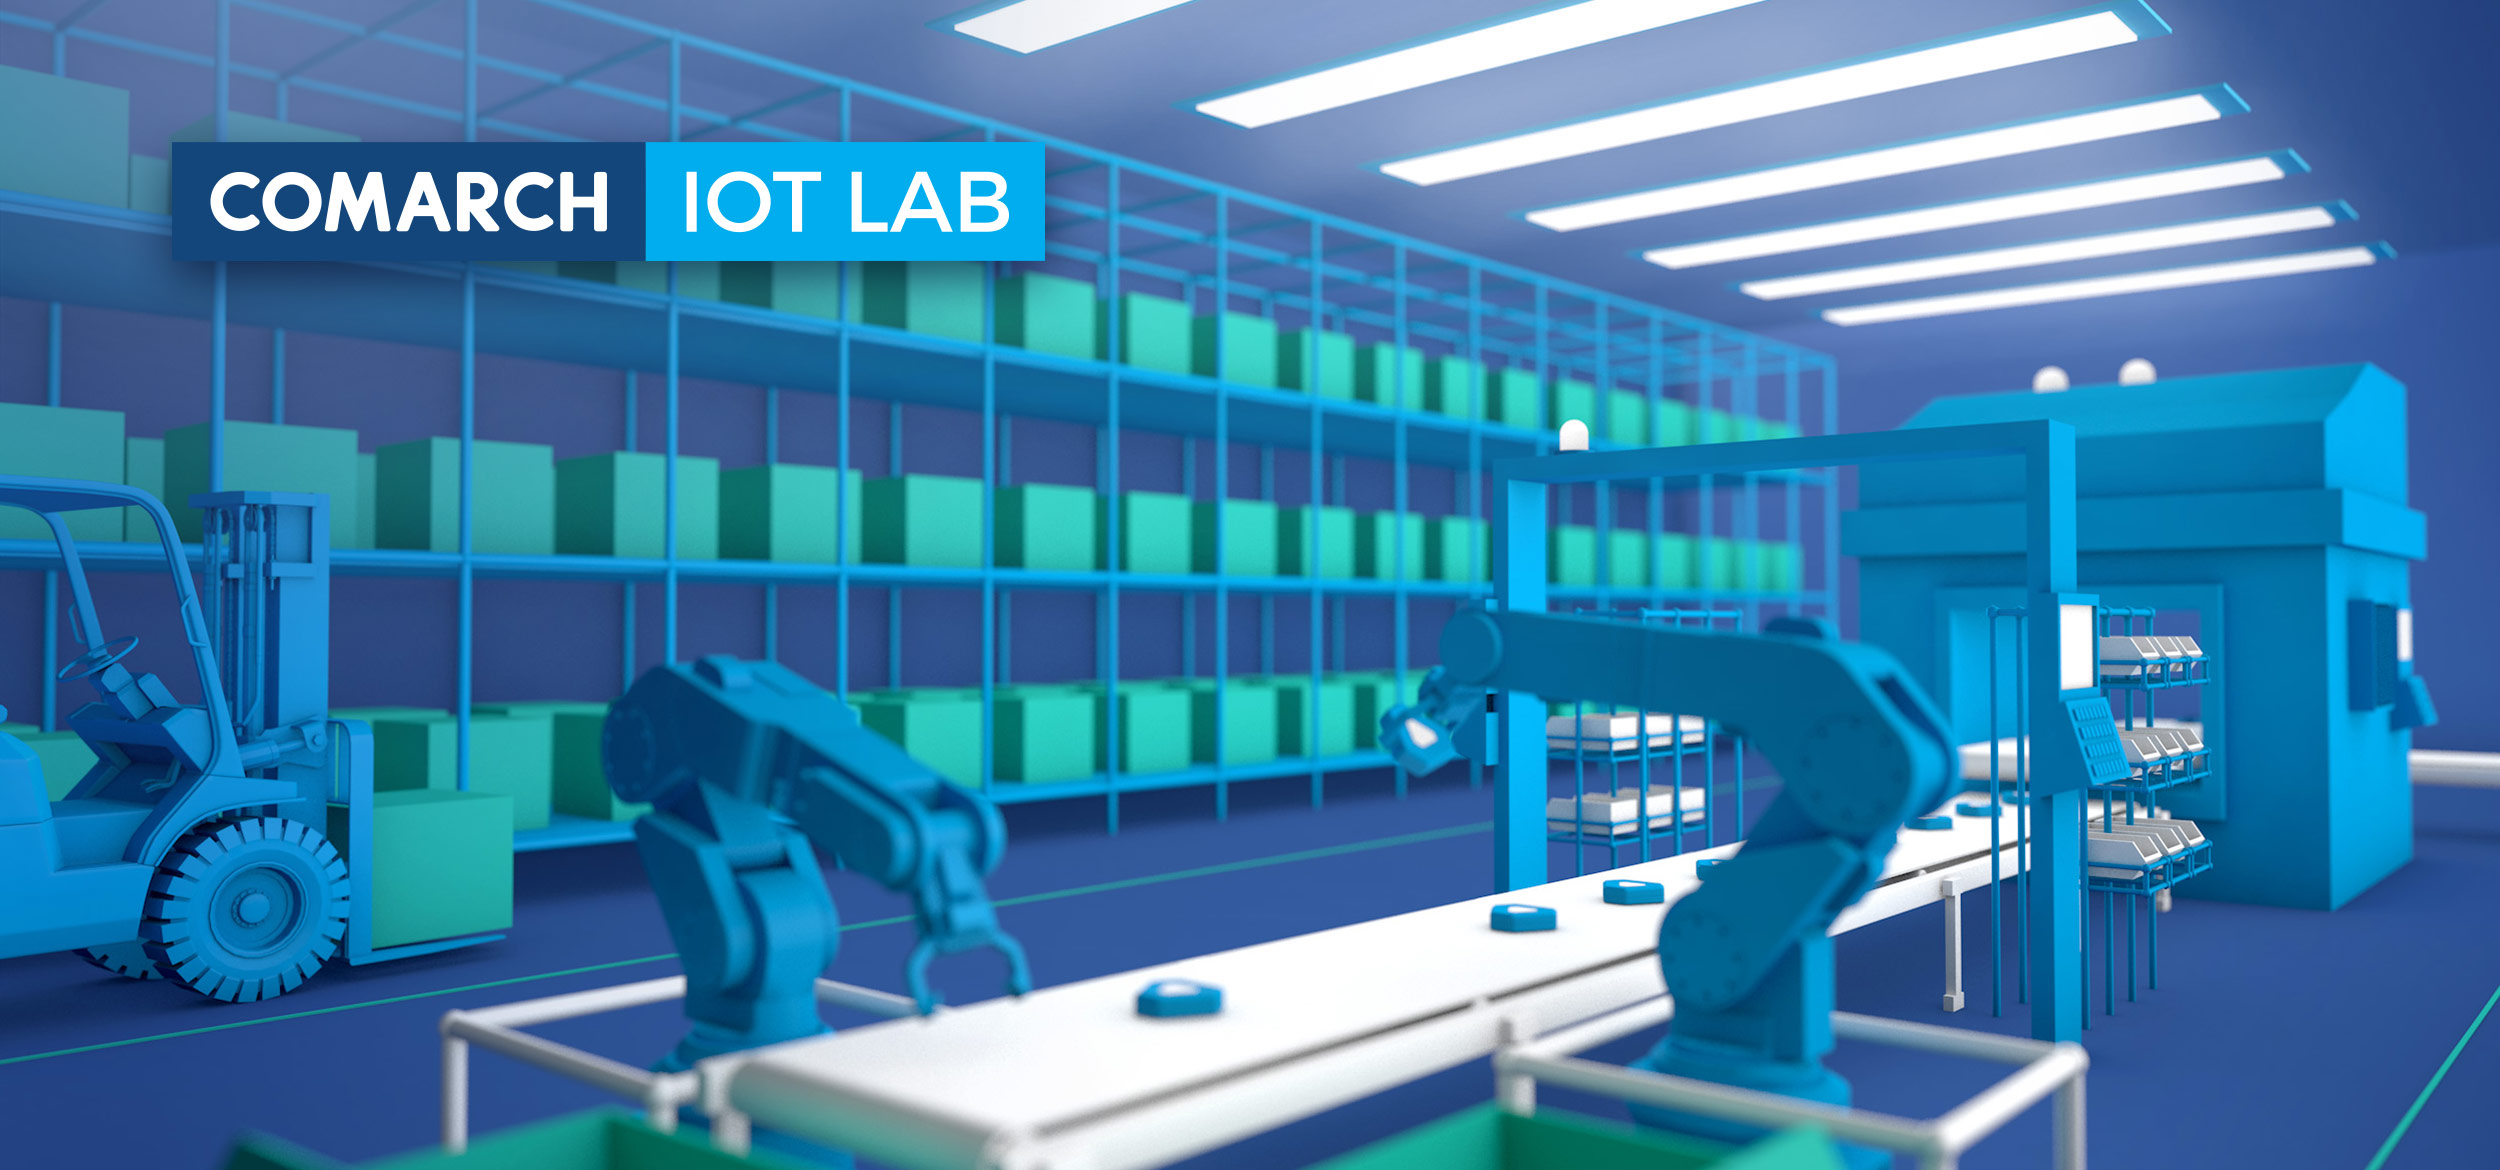 Comarch-IoT-Lab